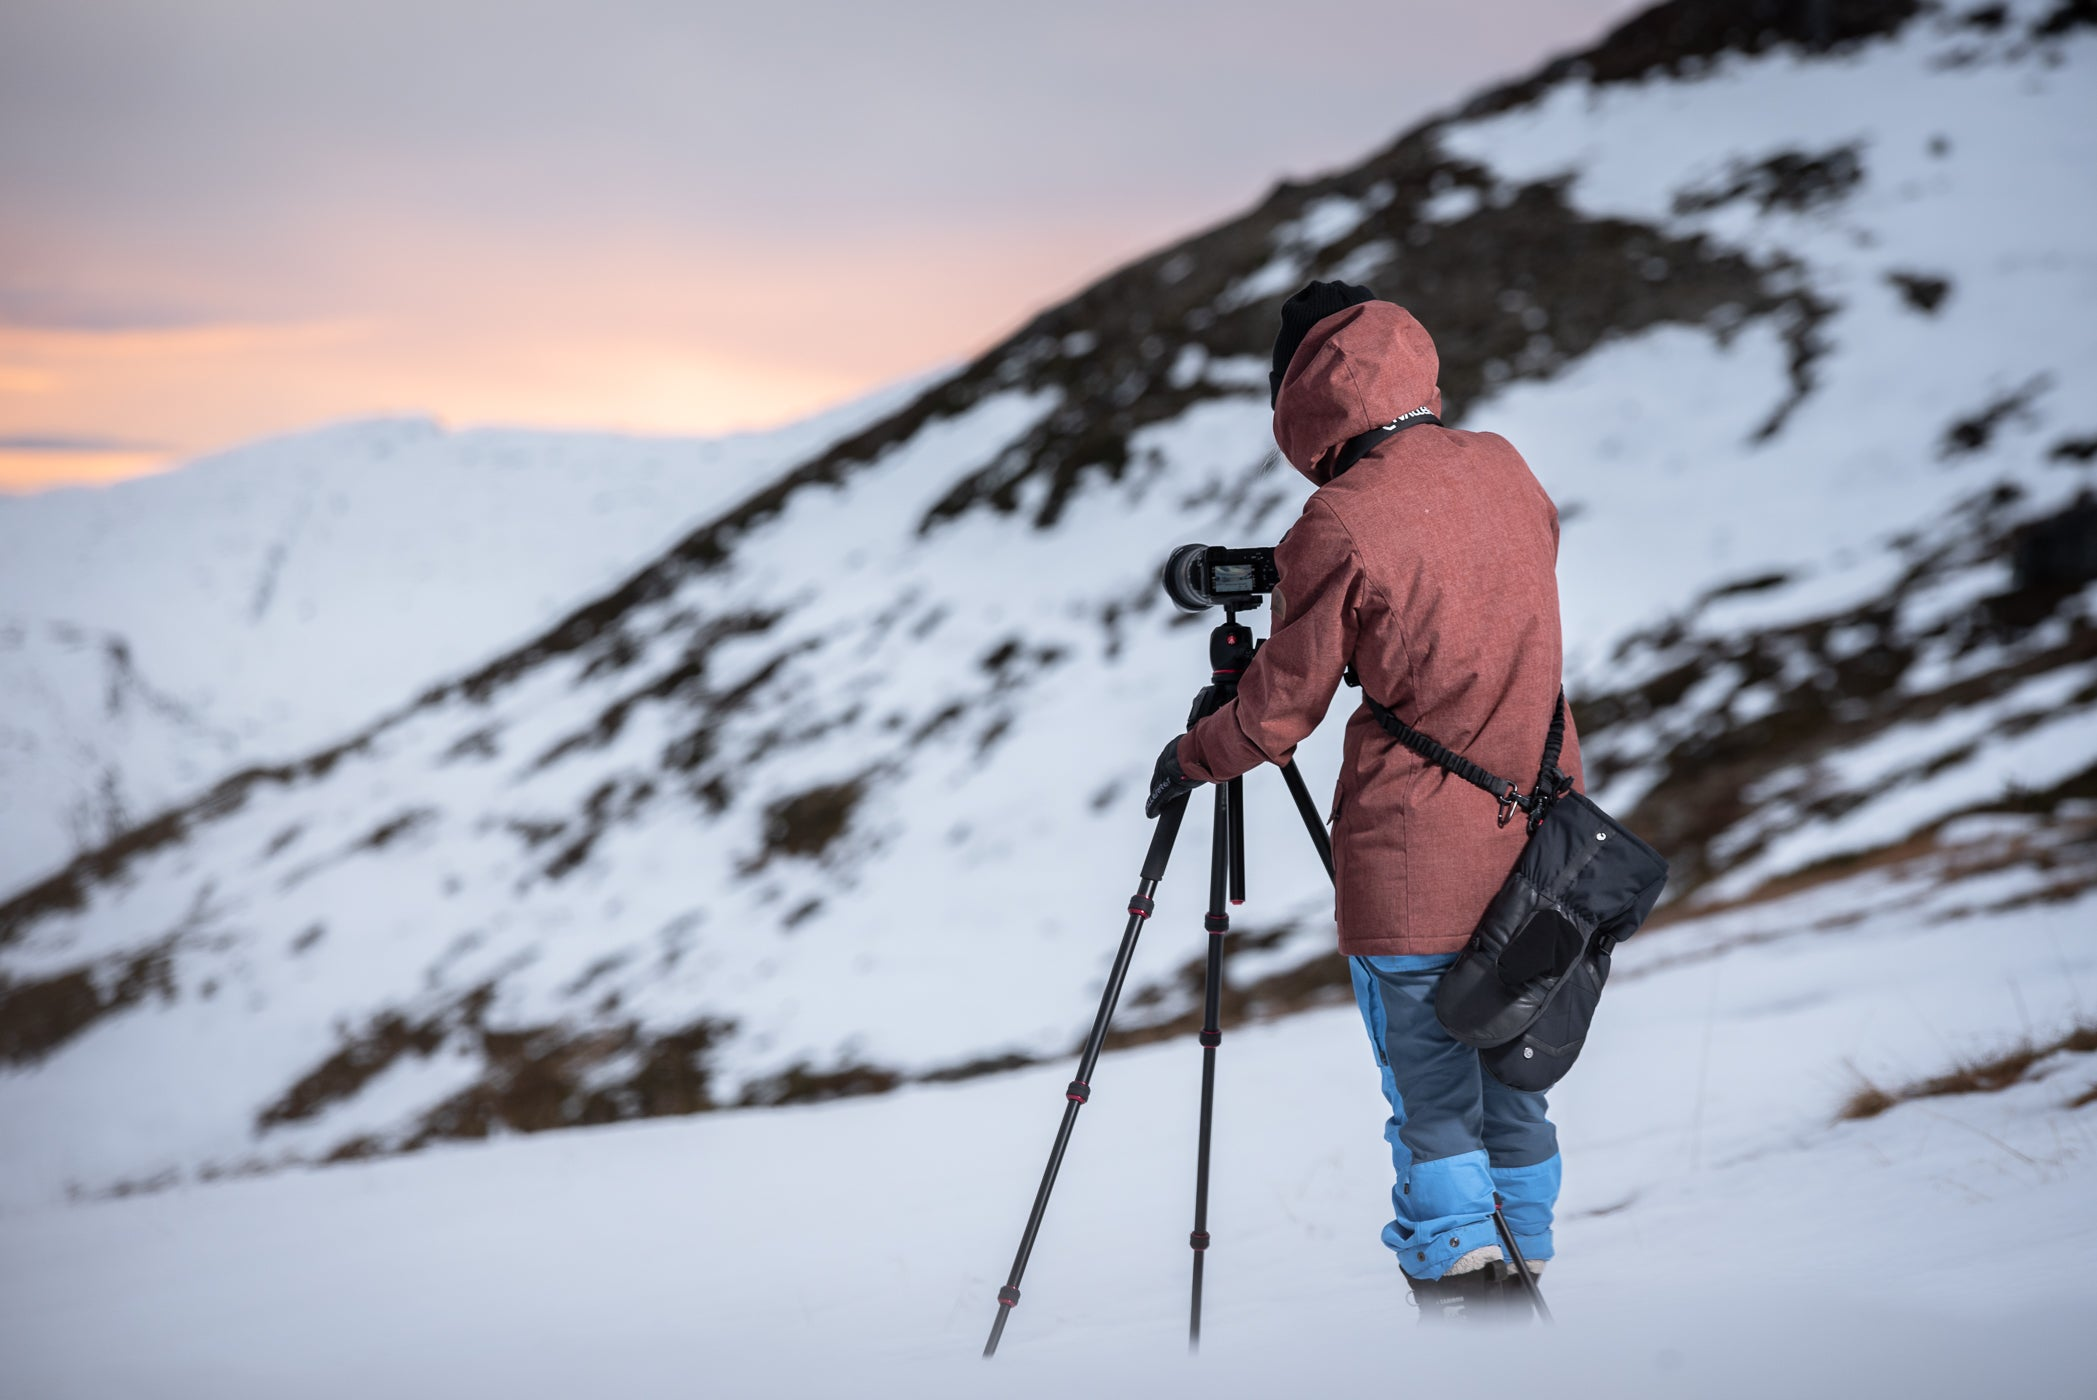 photographing in arctic conditions